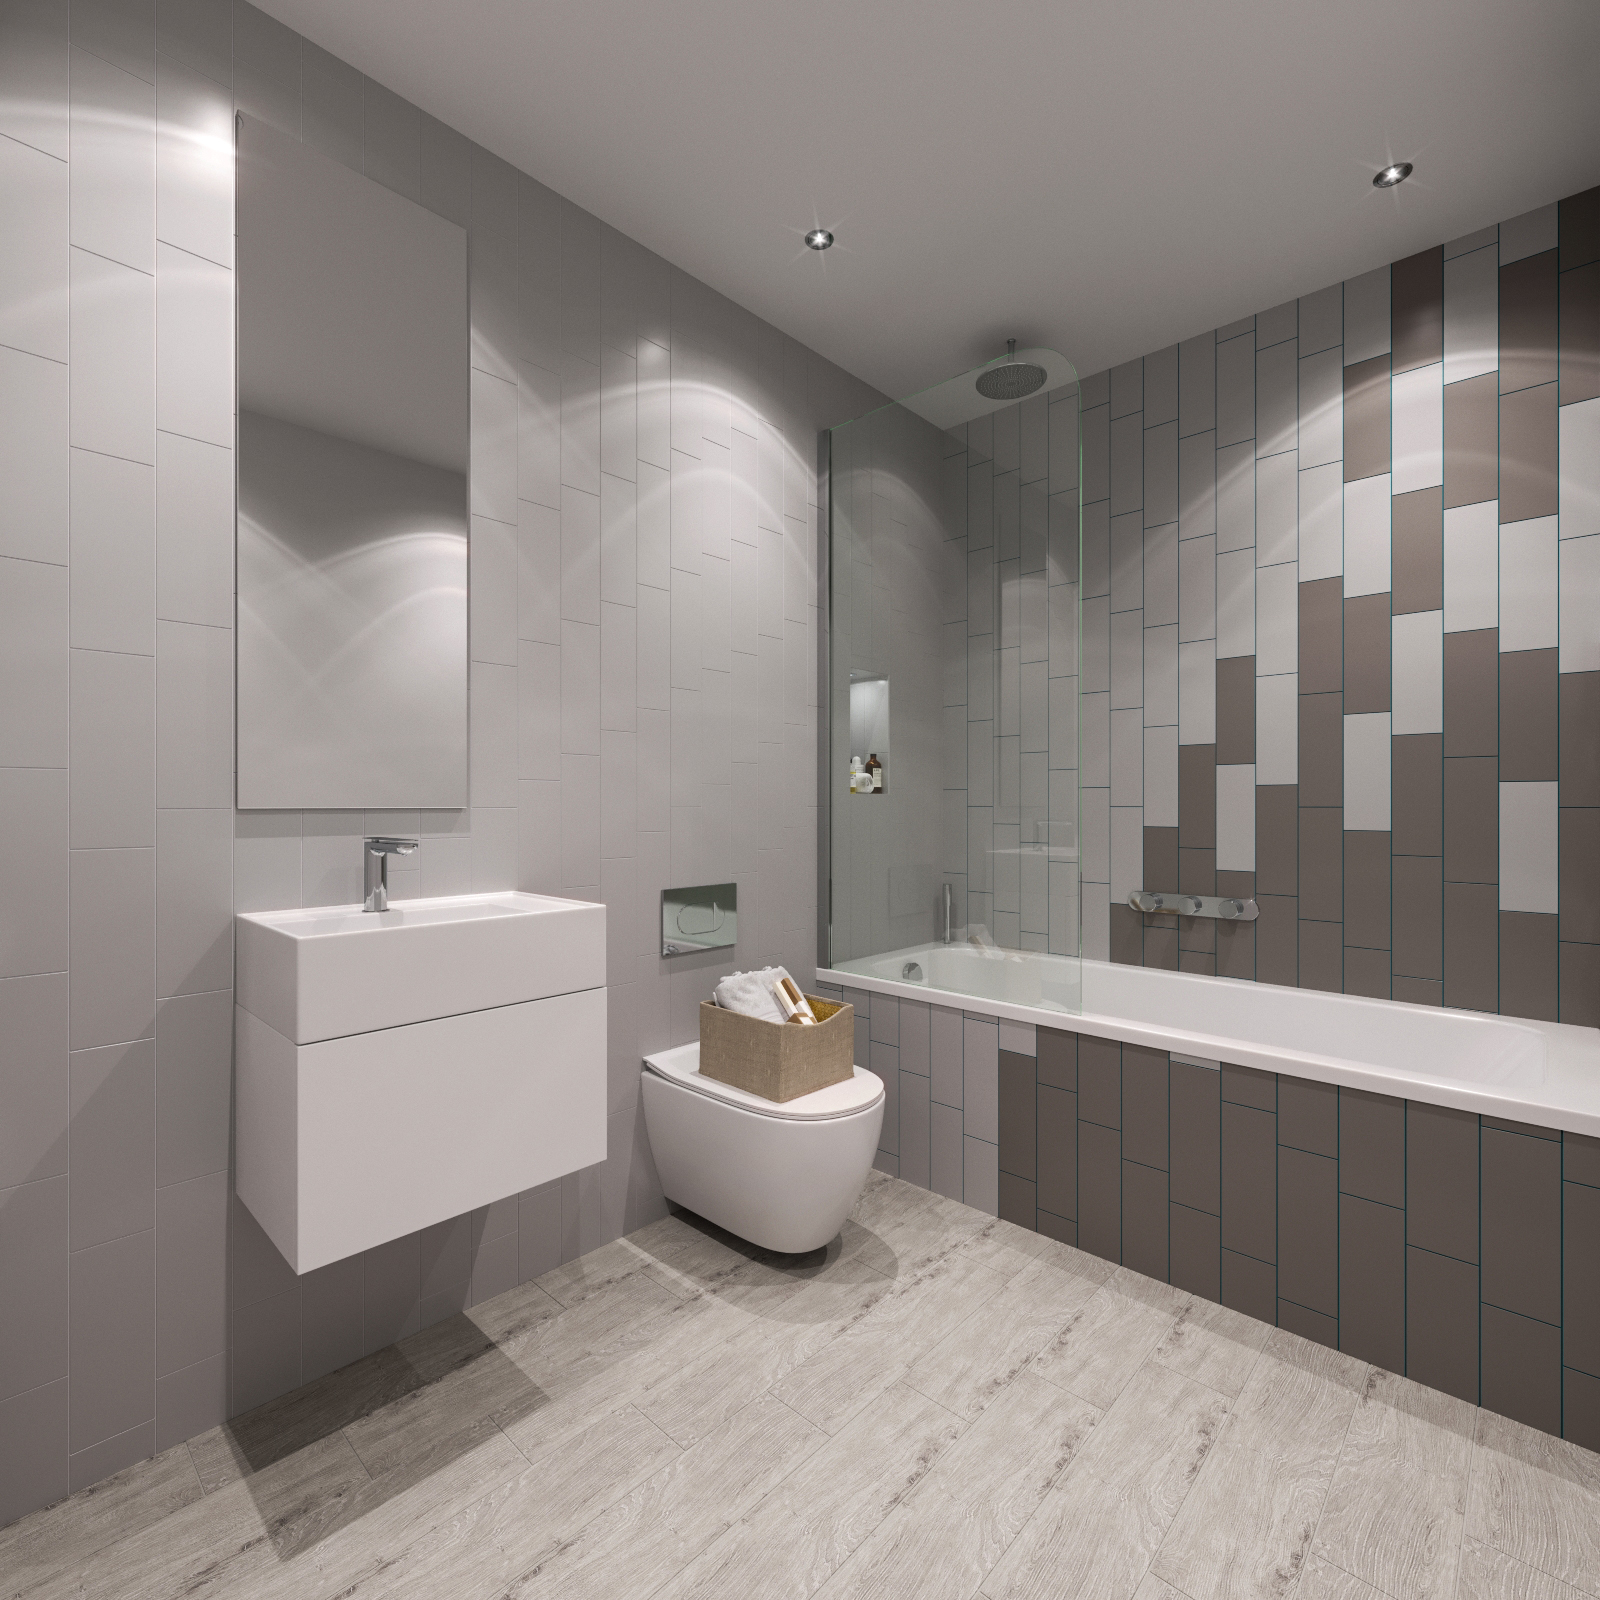 Bathroom Luxury CGI